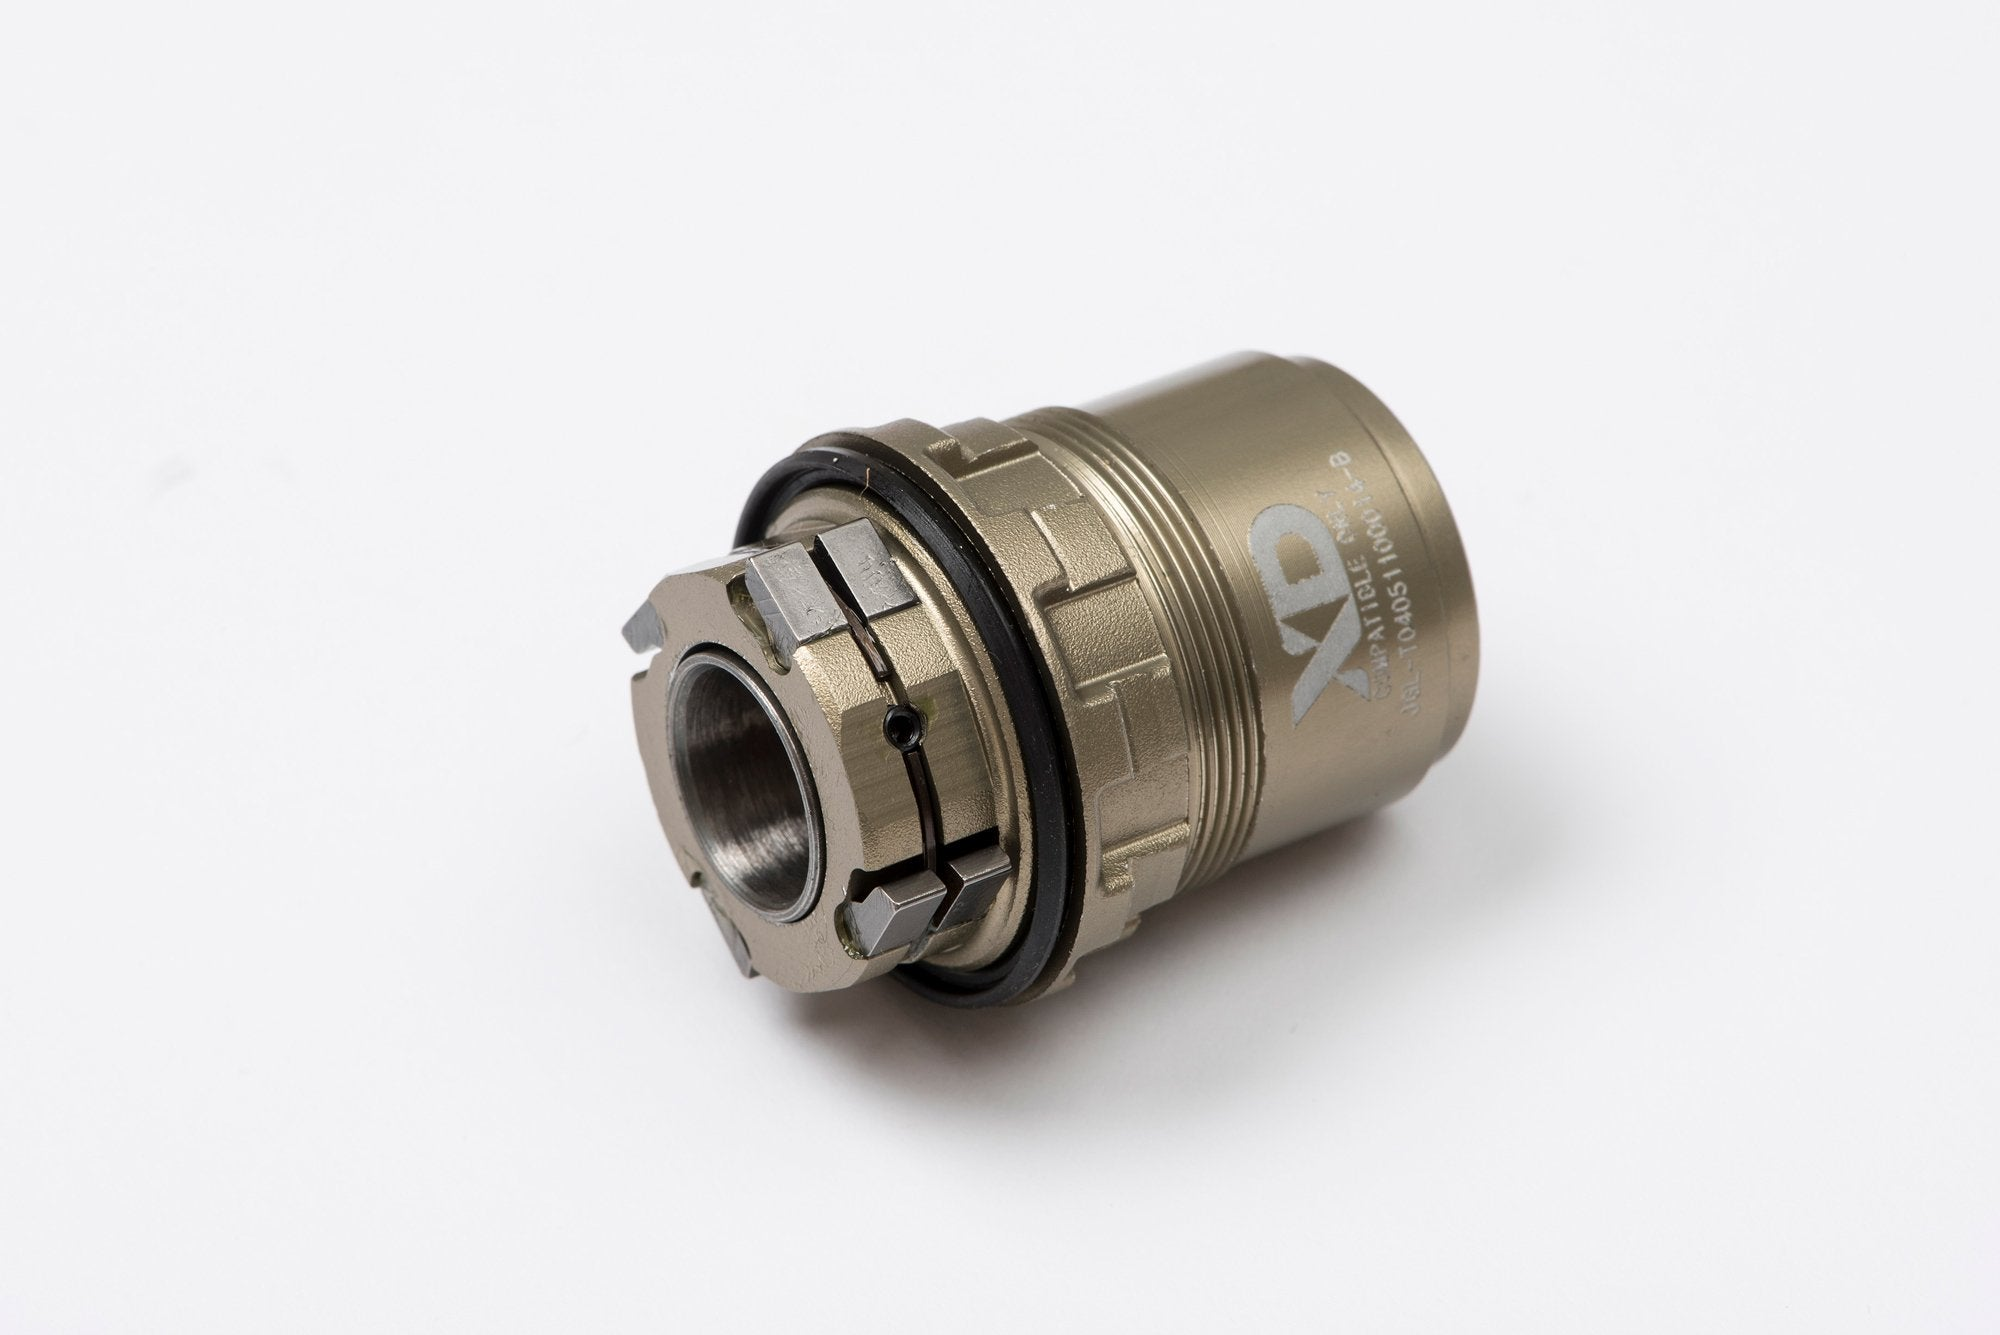 Replacement Freehub For Previous Version HUNT Sprint Hubs